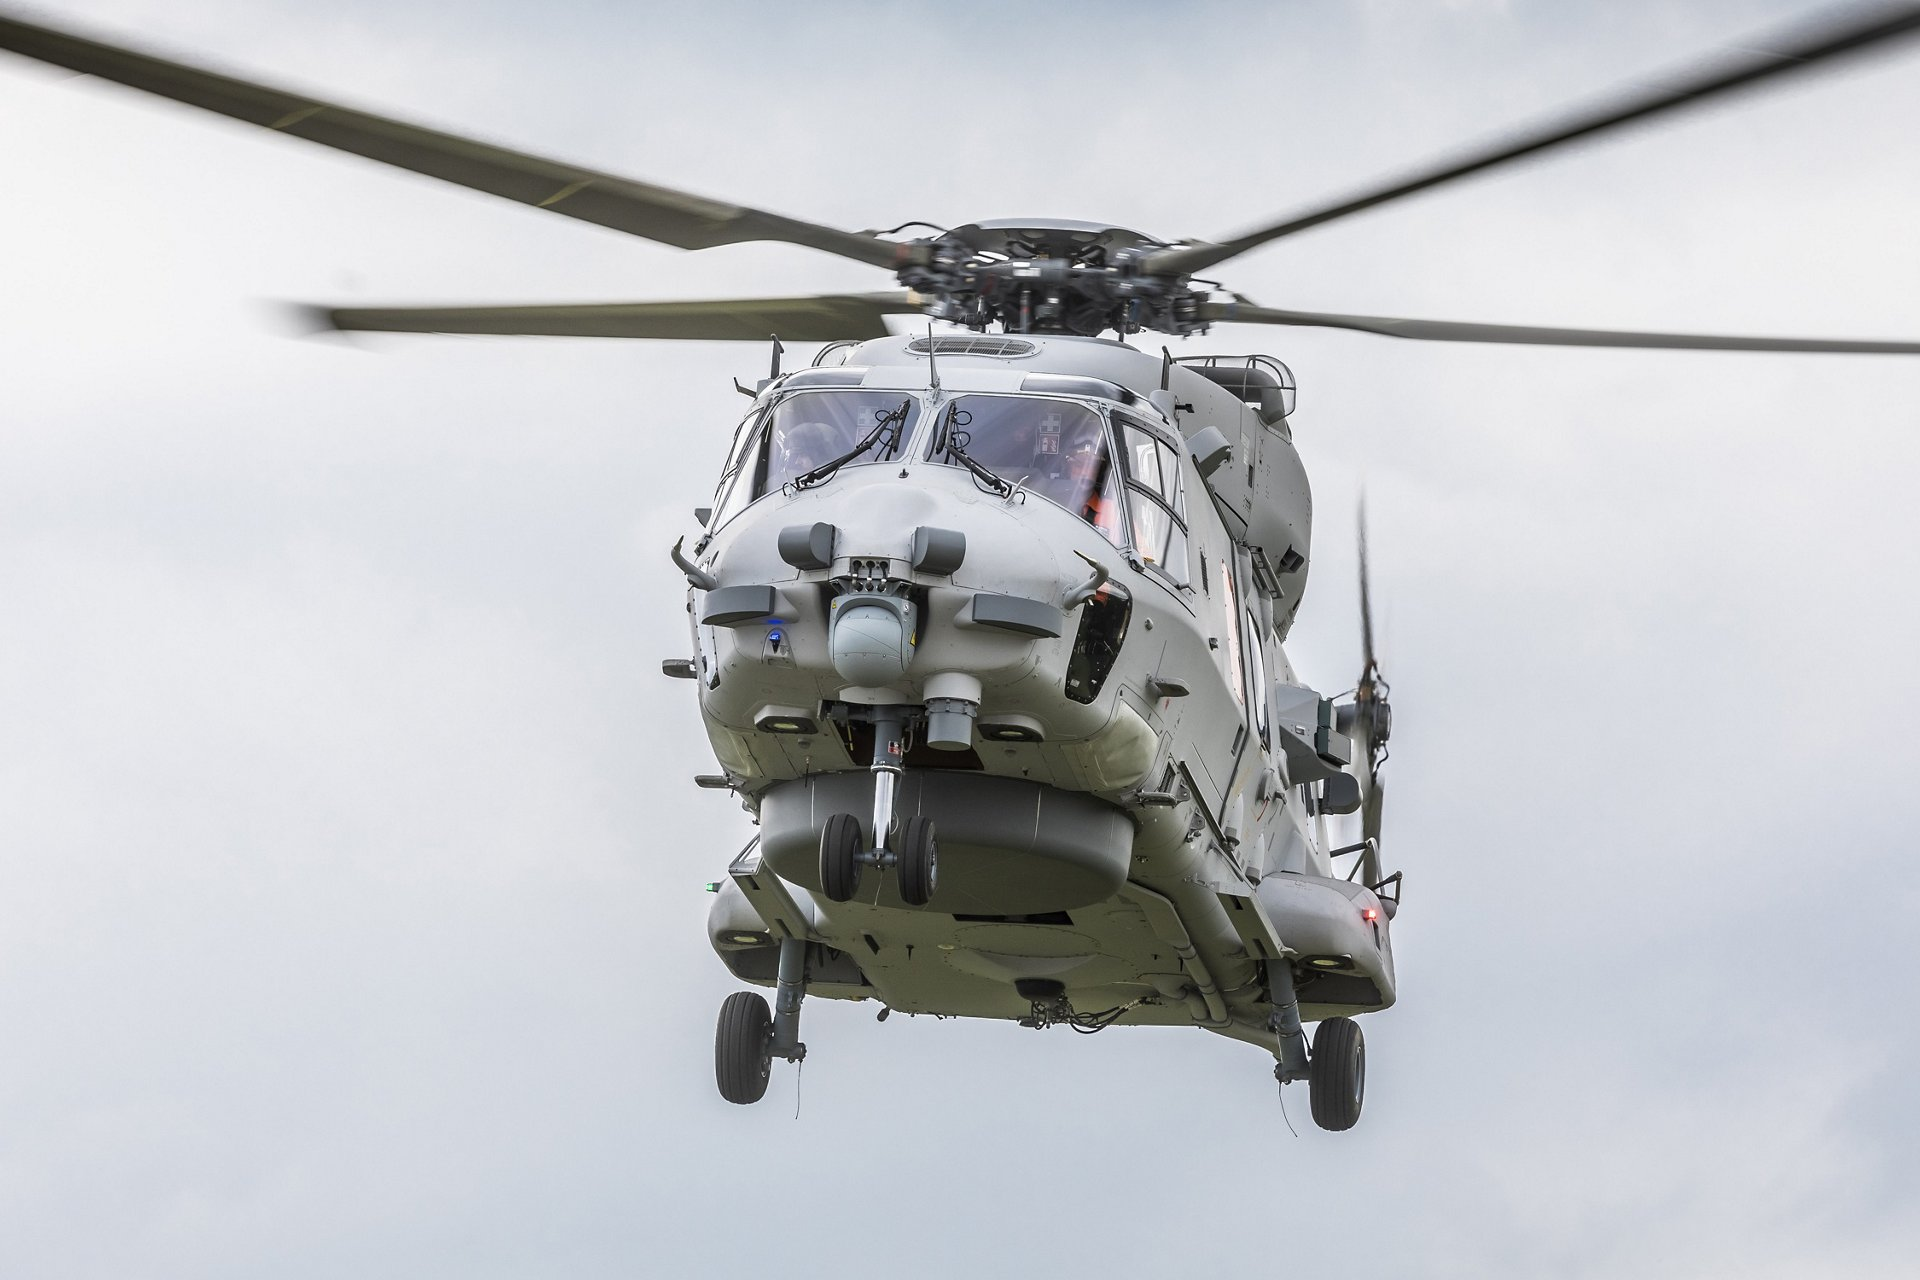 The NH90 Sea Lion has recently taken two important milestones towards the first delivery end of 2019.